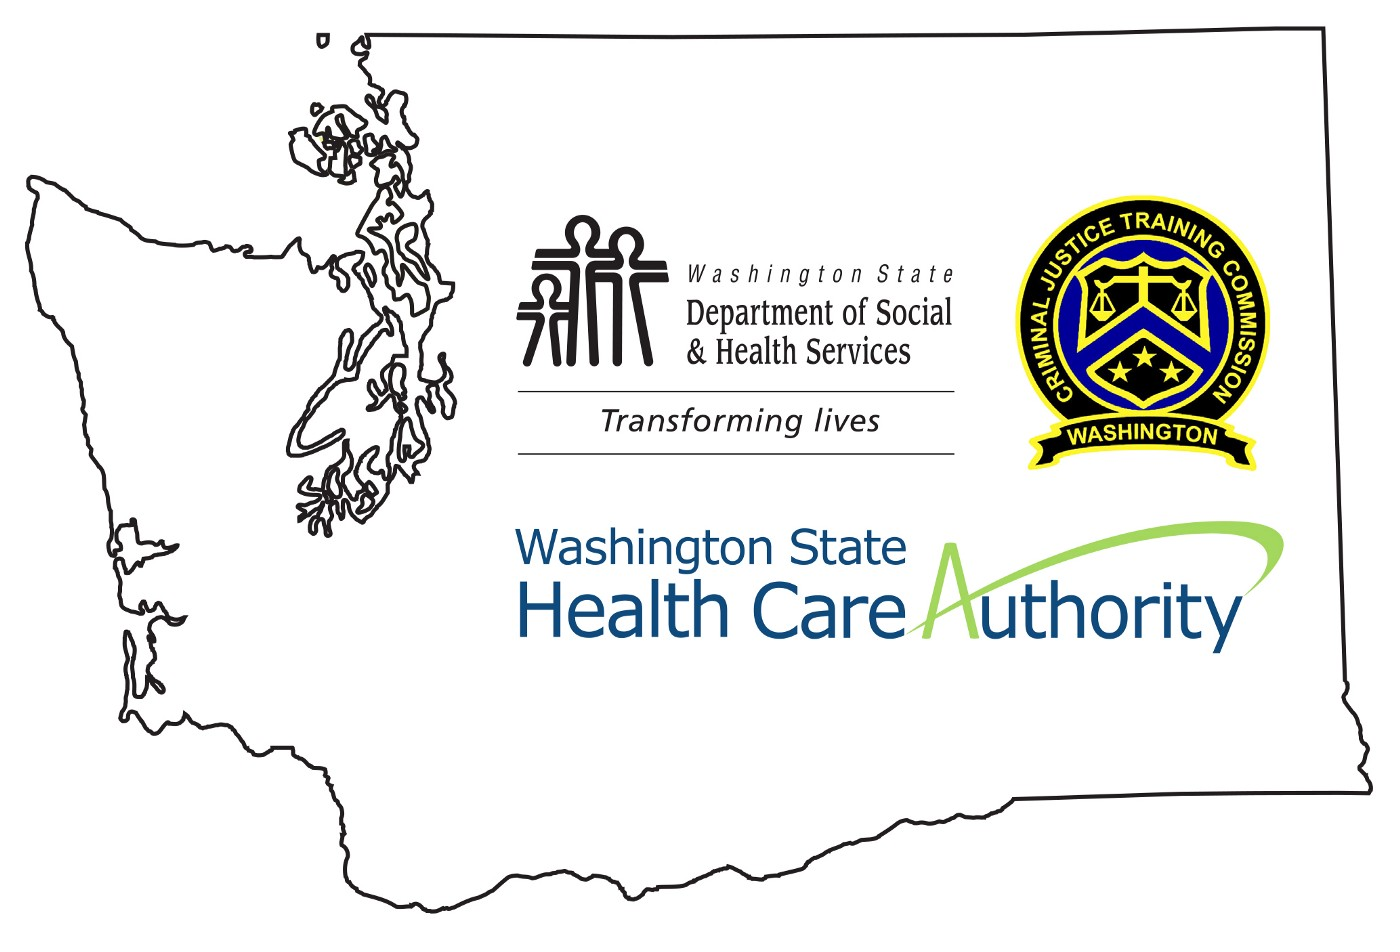 Outline of Washington state with the Department of Social and Health Services, Health Care Authority and Criminal Justice Training Center logos.